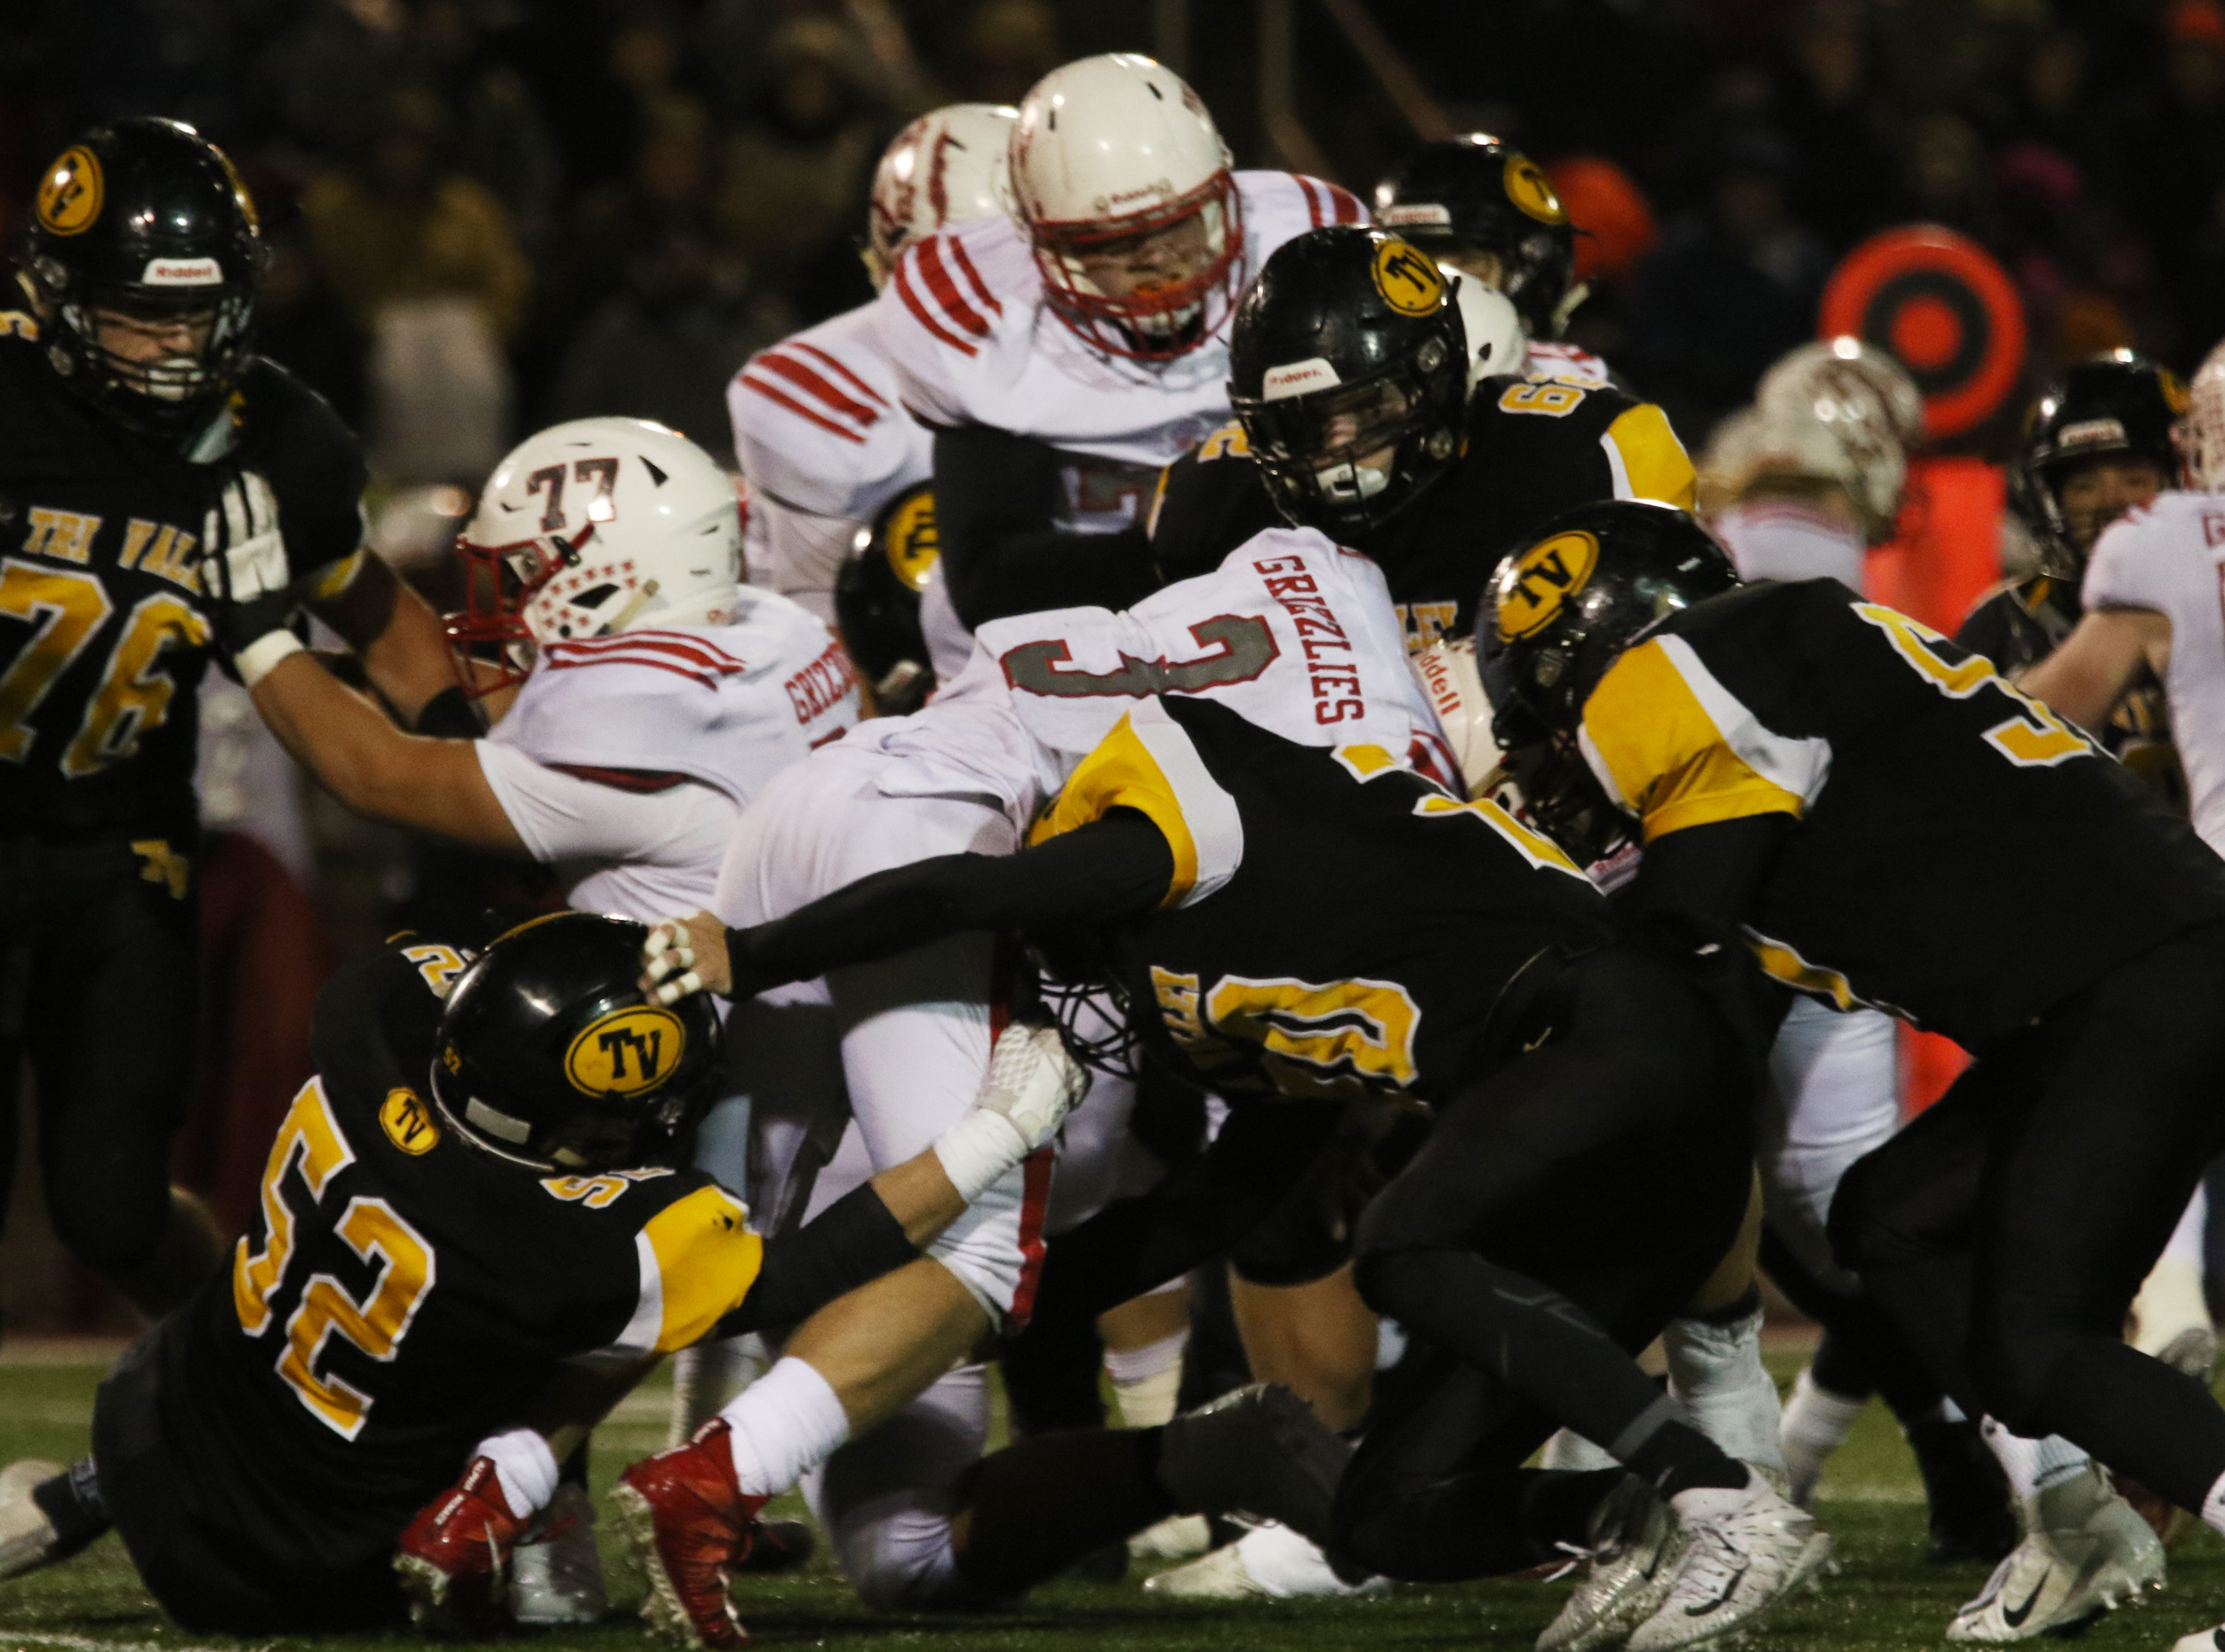 Tri-Valley defenders, including Tom Reiss (52) tackle Wadsworth's Dom Loparo.